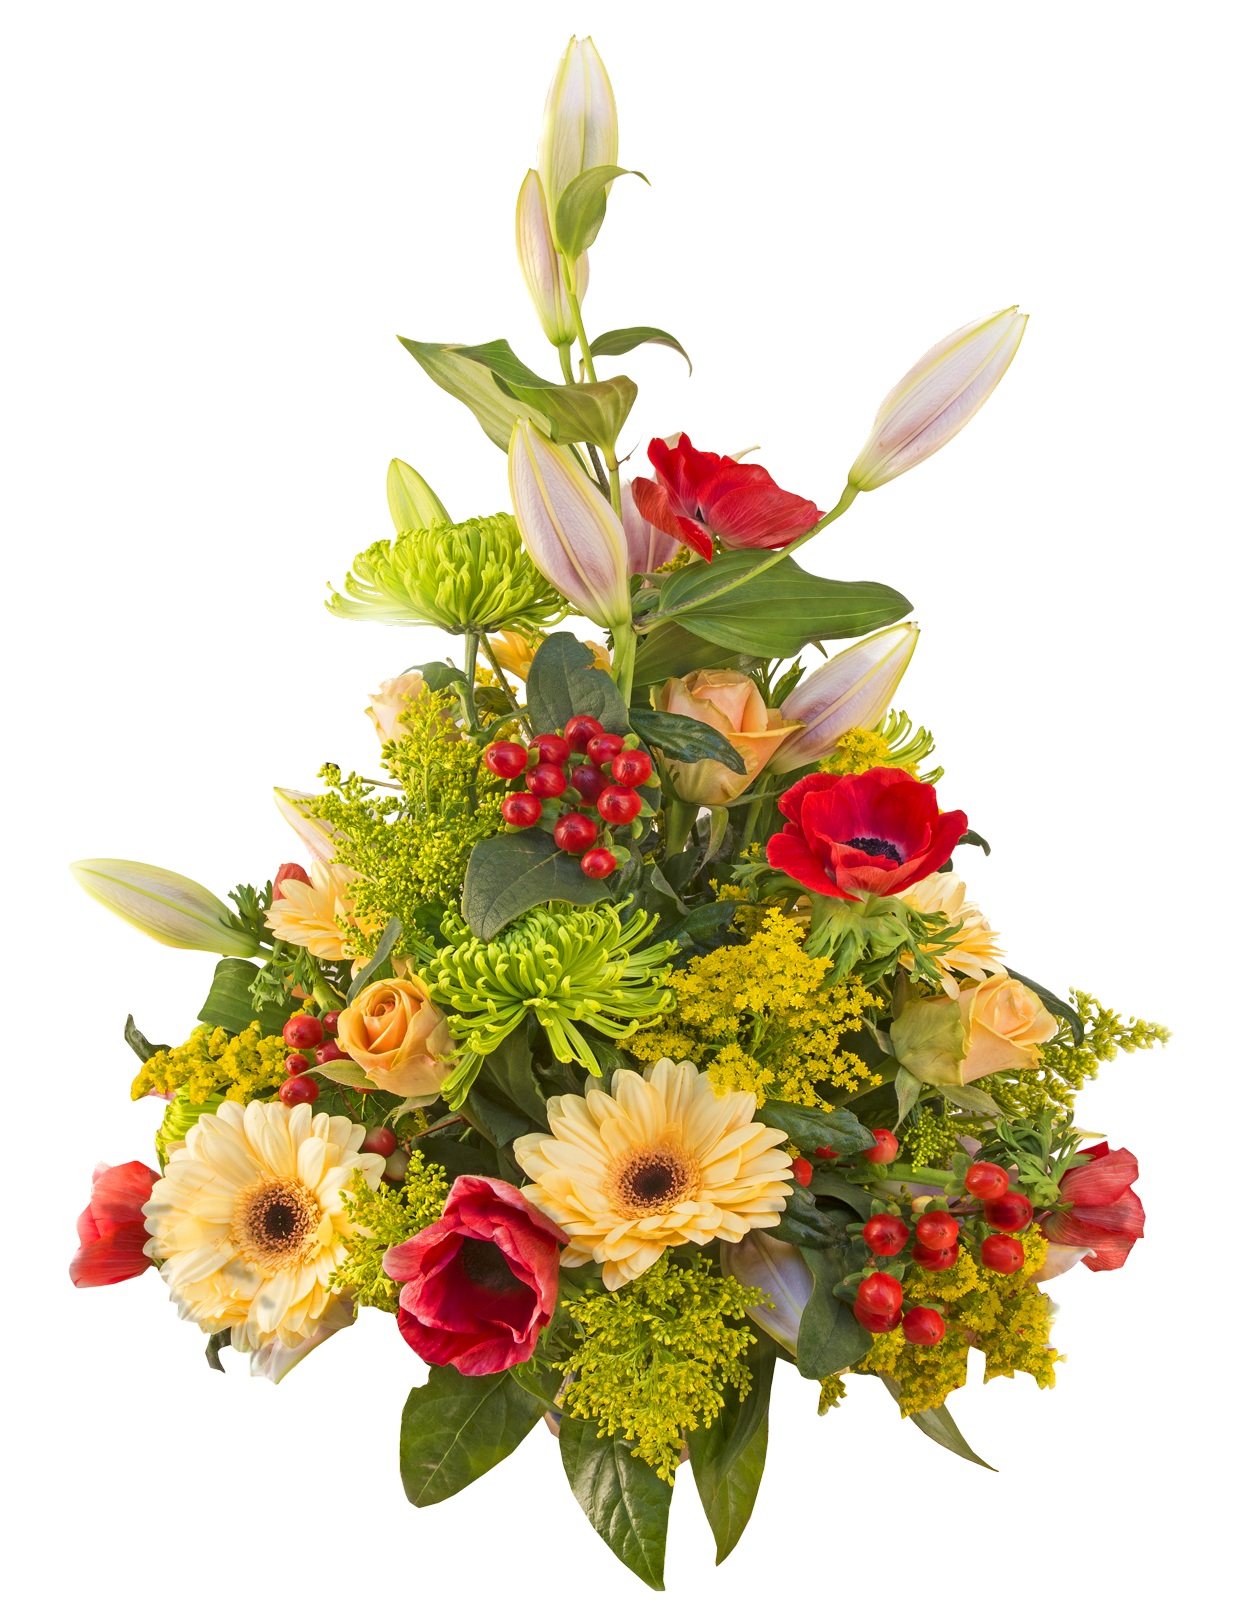 Bouquet Of Roses Png Hd Transparent Bouquet Of Roses Hdg Images